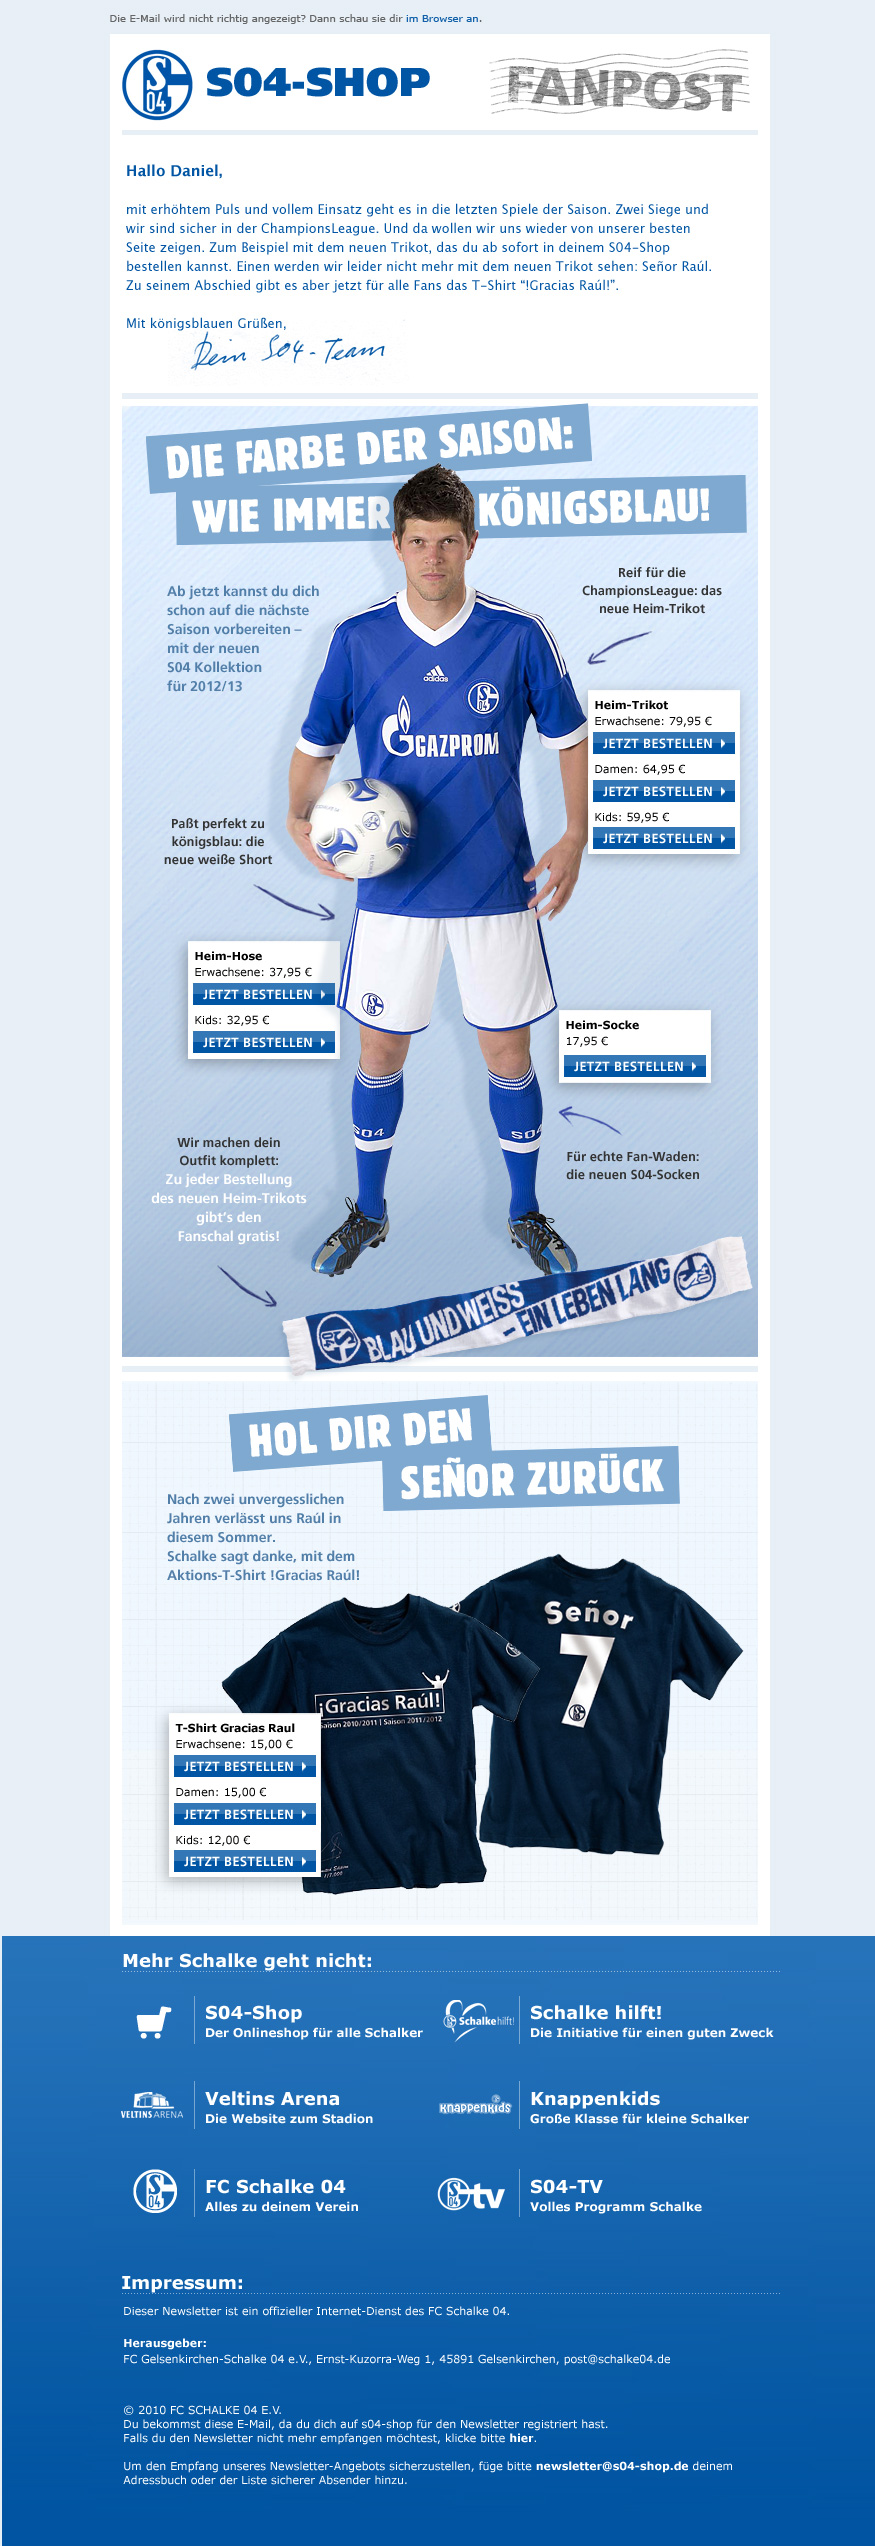 Schalke04 Newsletter vom April 2012